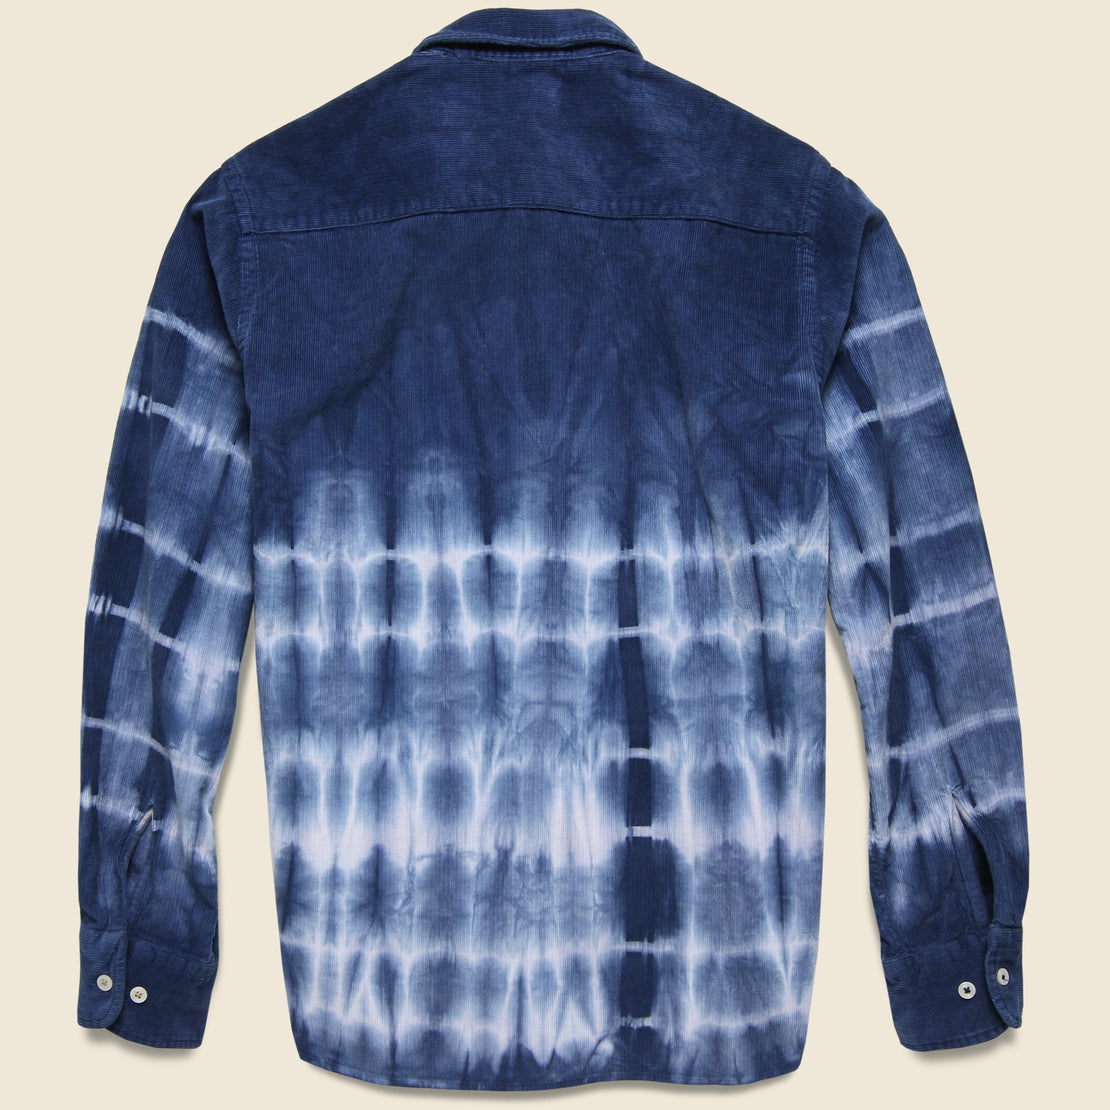 Cord Everyday Shirt - Indigo Tie Dye